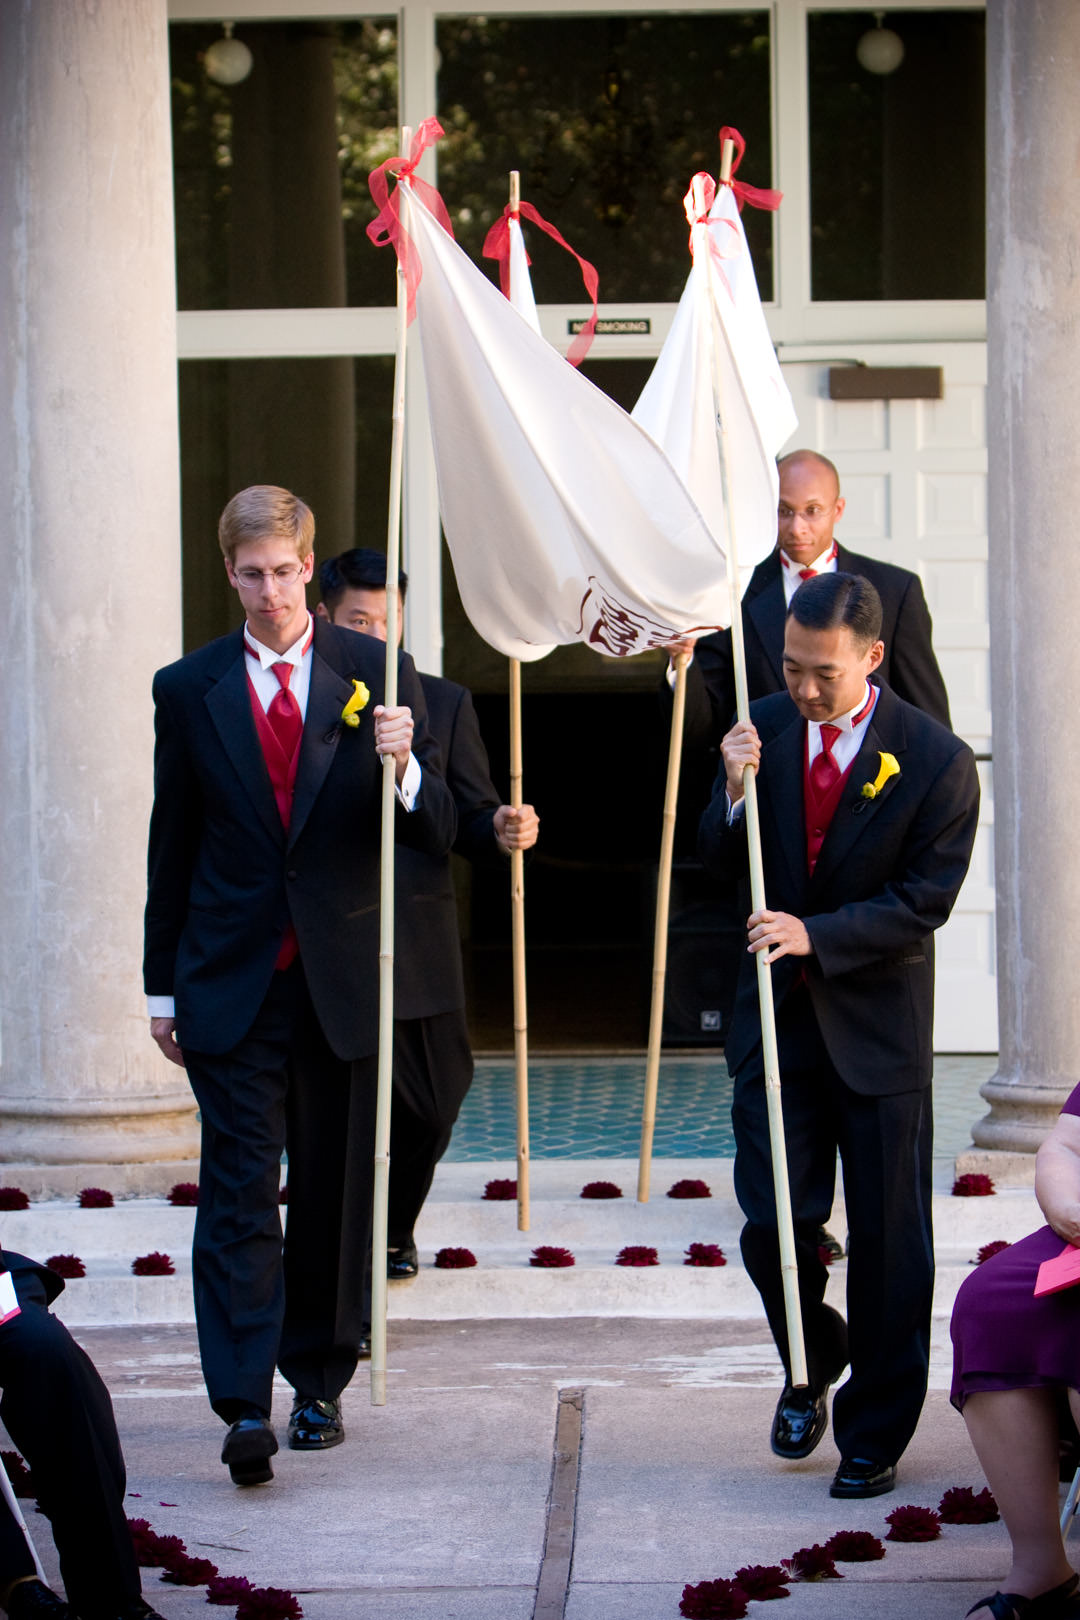 Groomsmen carry chuppah before wedding